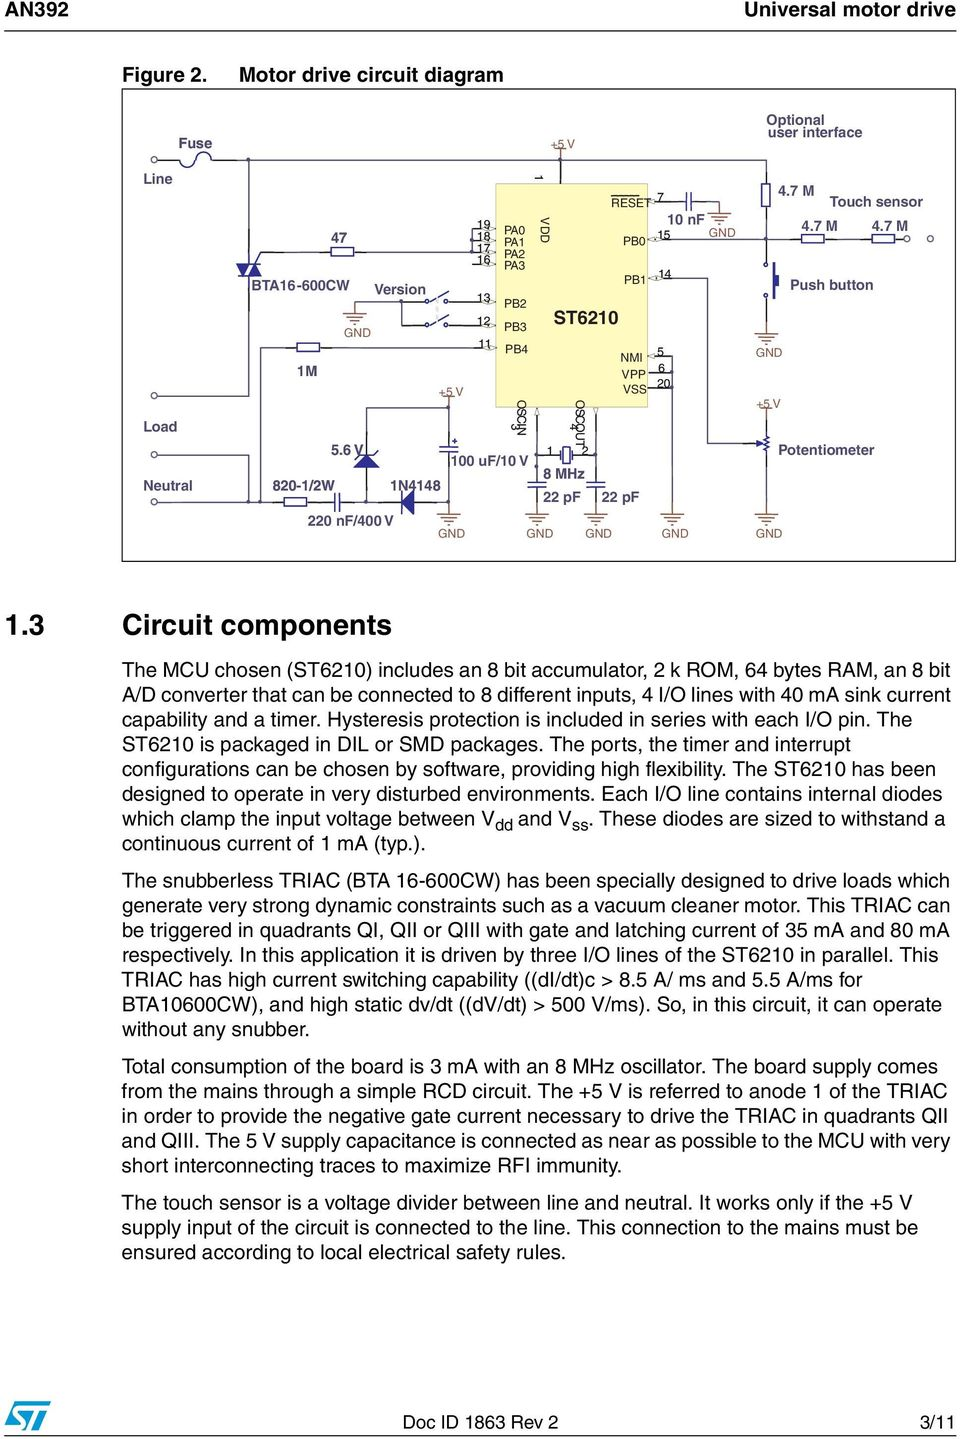 An392 Application Note Pdf Bta41 600b Datasheet Electronic Circuit Projects 7 M Push Button Potentiometer 1